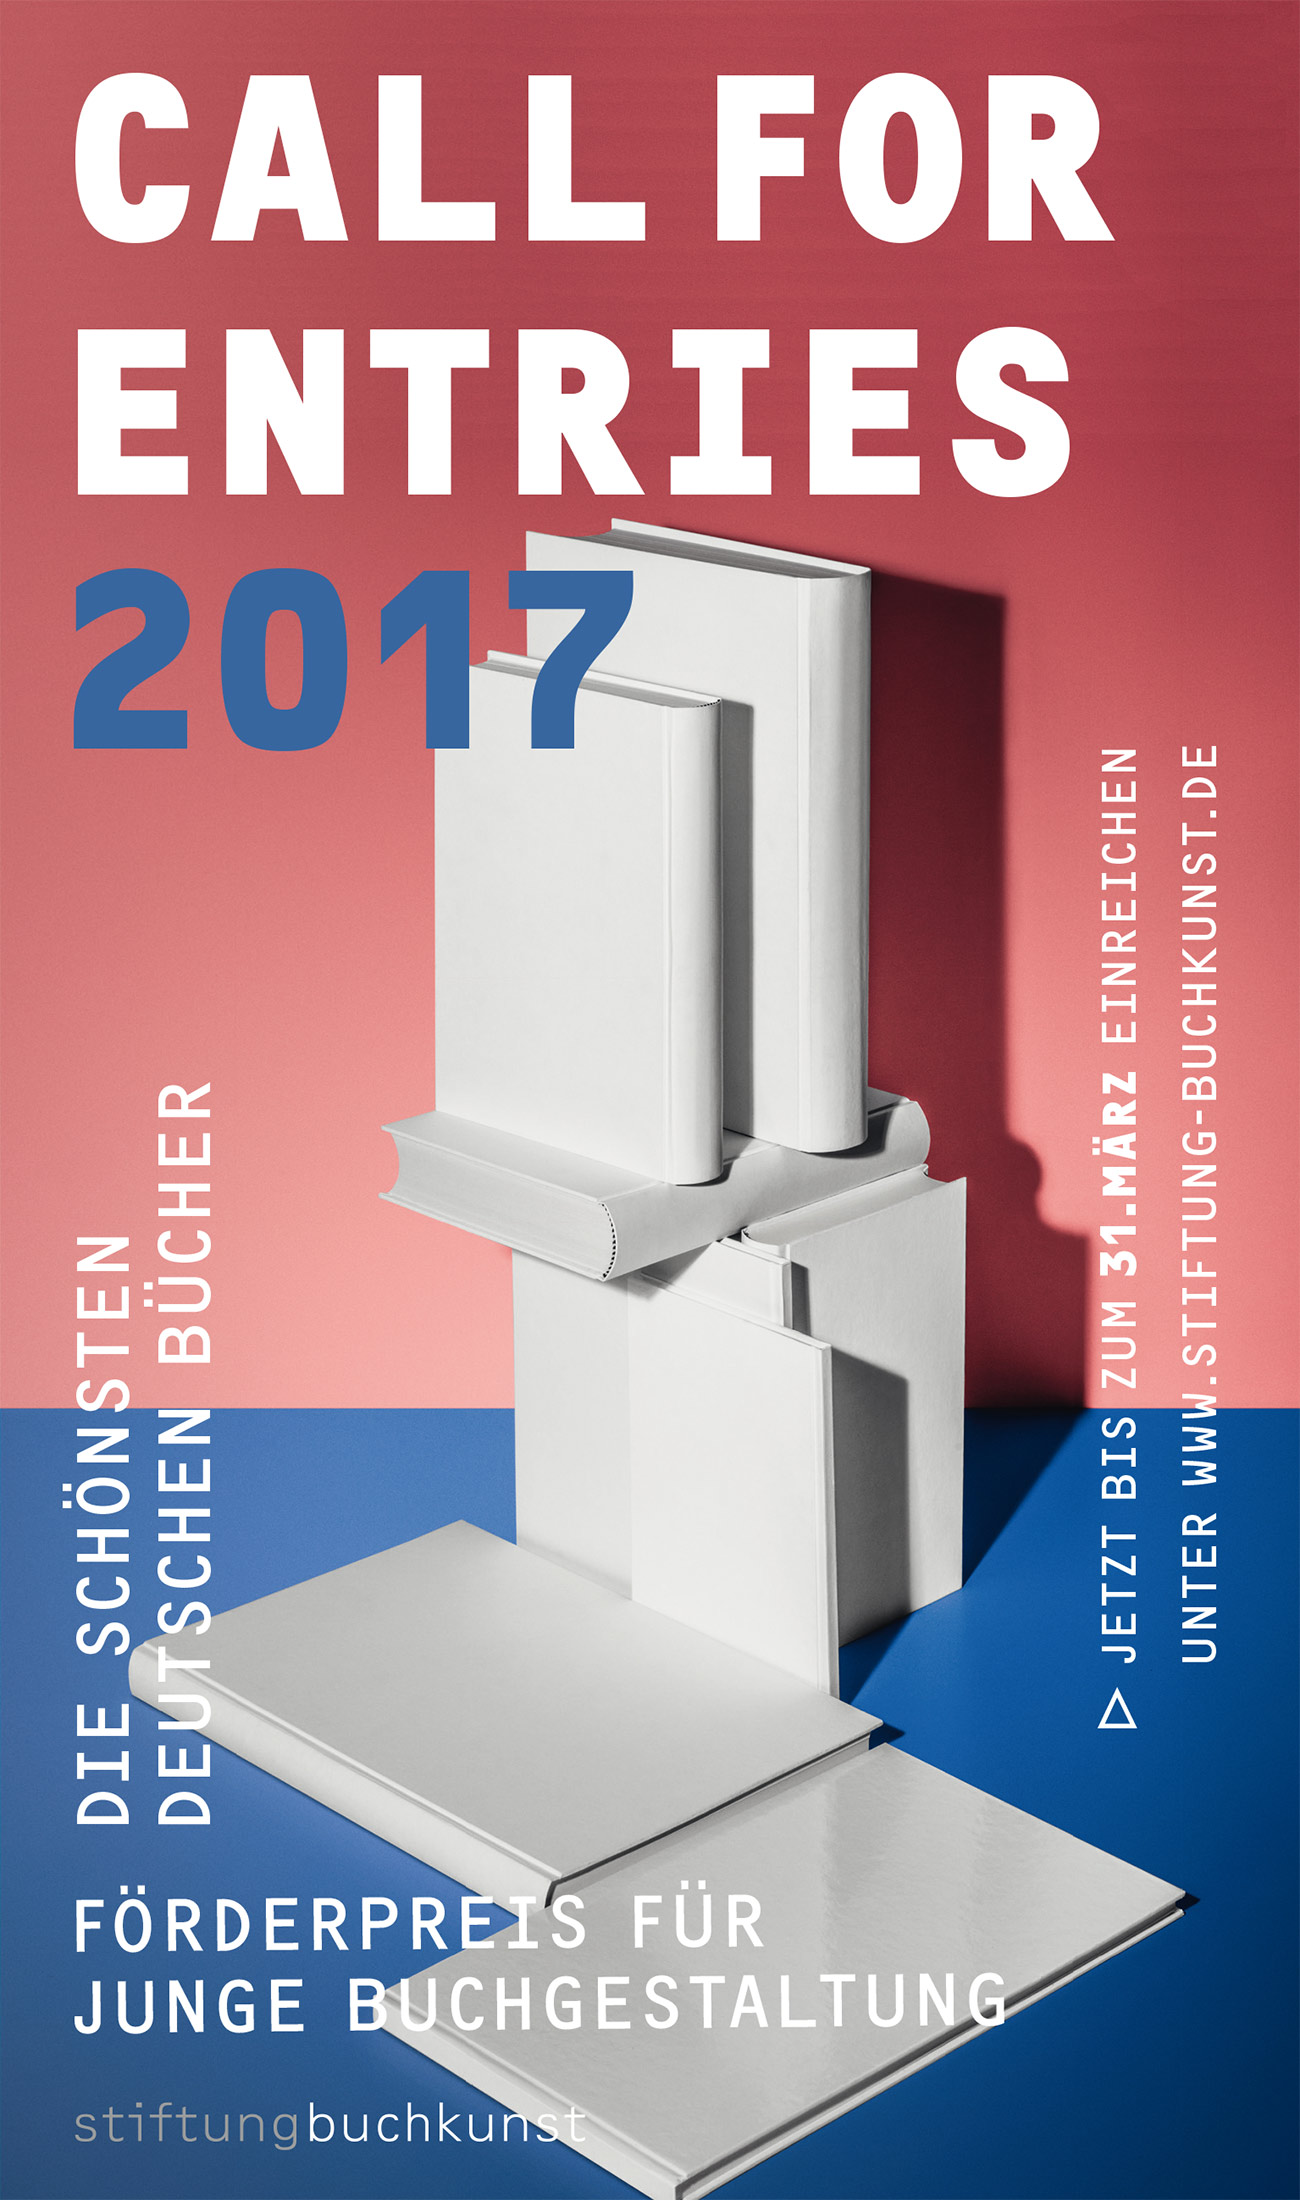 bk_170118_stiftung_buchkunst_call-for-entries-2017